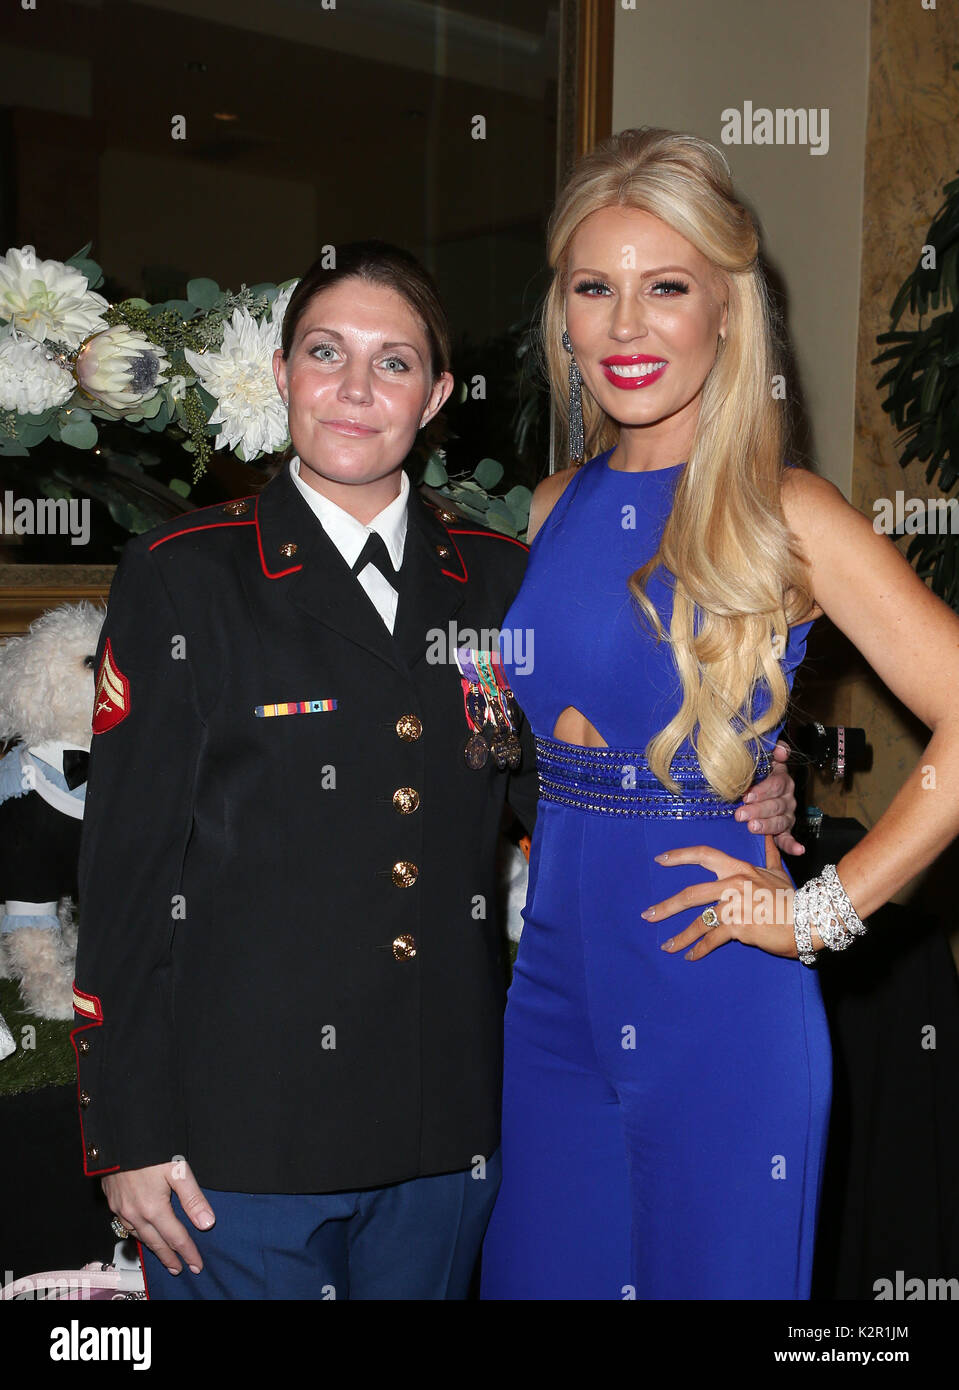 Los Angeles, Ca, USA  9th Nov, 2017  Megan Leavey, Gretchen Rossi